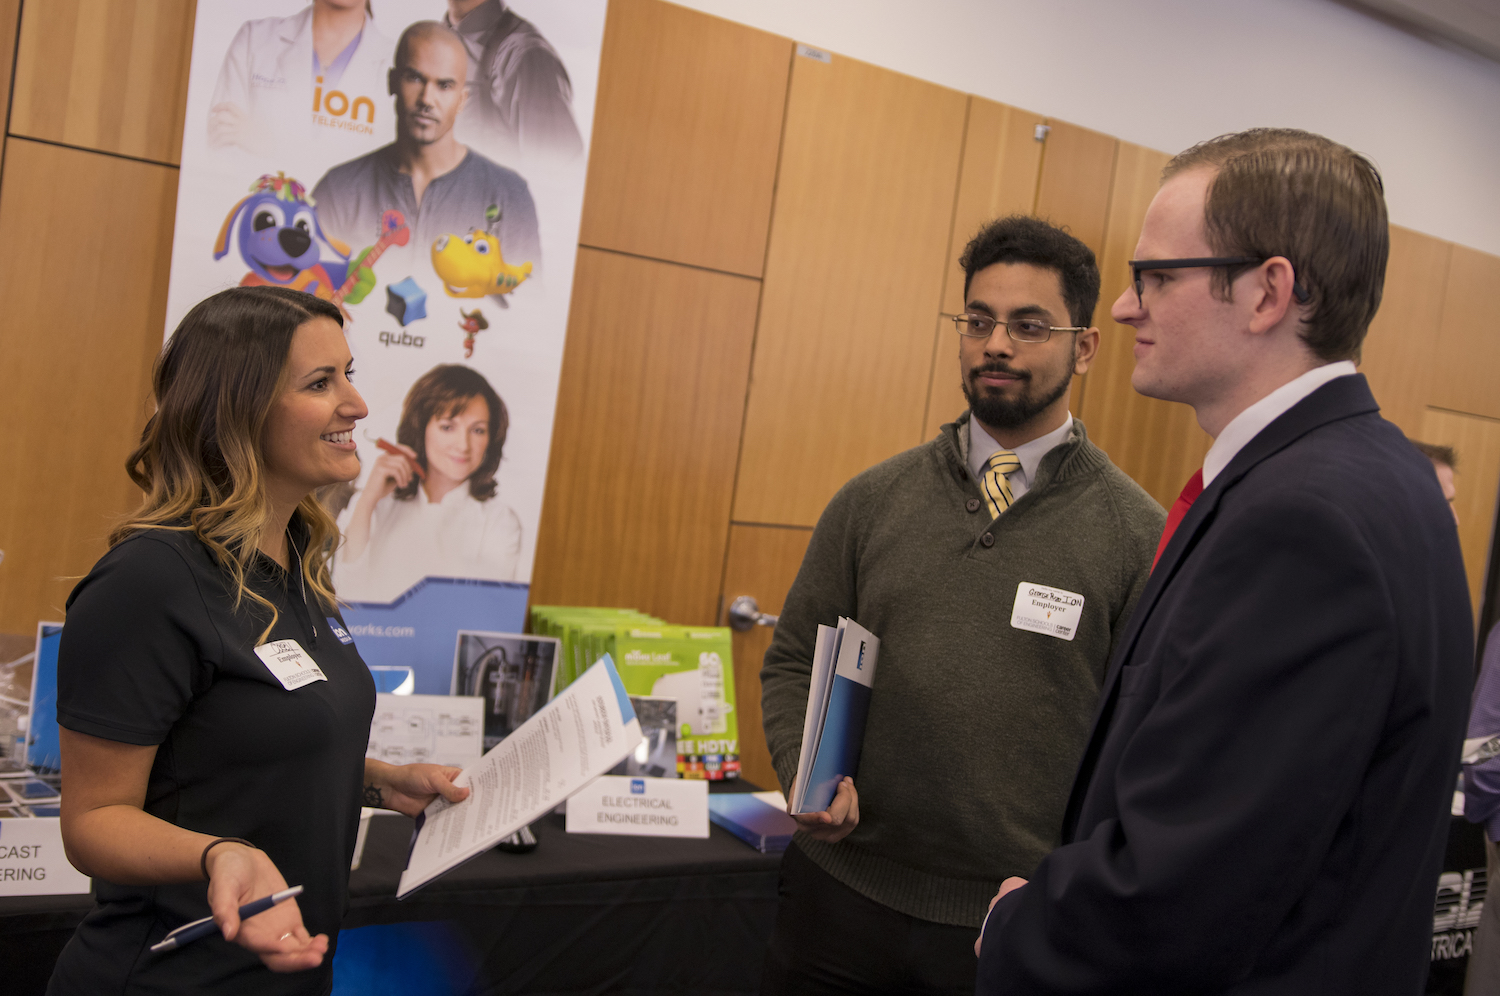 Photo of a student talking with a pair of recruiters. Caption: Representatives from more than 400 companies and organizations met about 3,500 Fulton Schools students at the recent Career Fairs Days at Arizona State University Tempe and Polytechnic campuses. Photographer: Marco Alexis-Chaira/ASU